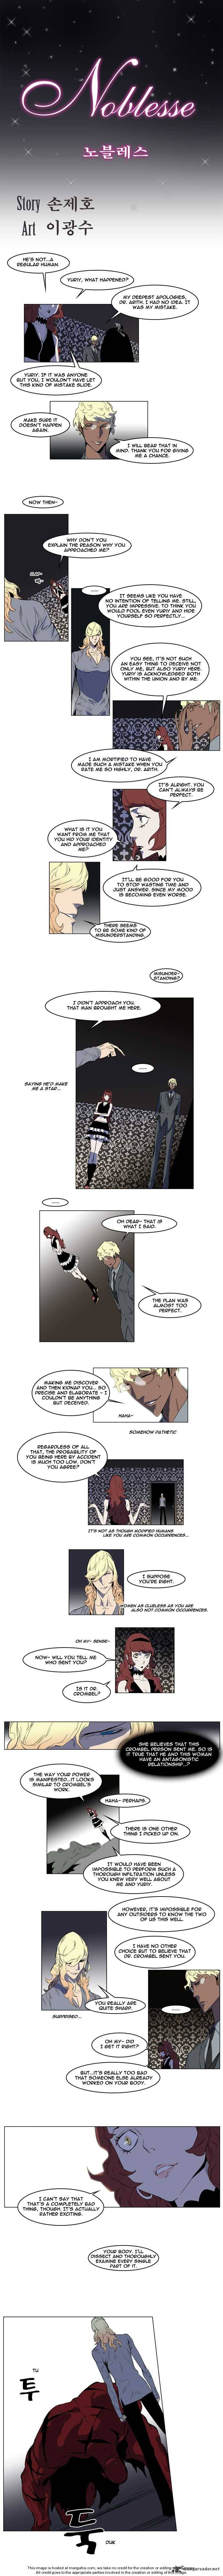 Noblesse Chapter 147 Page 1